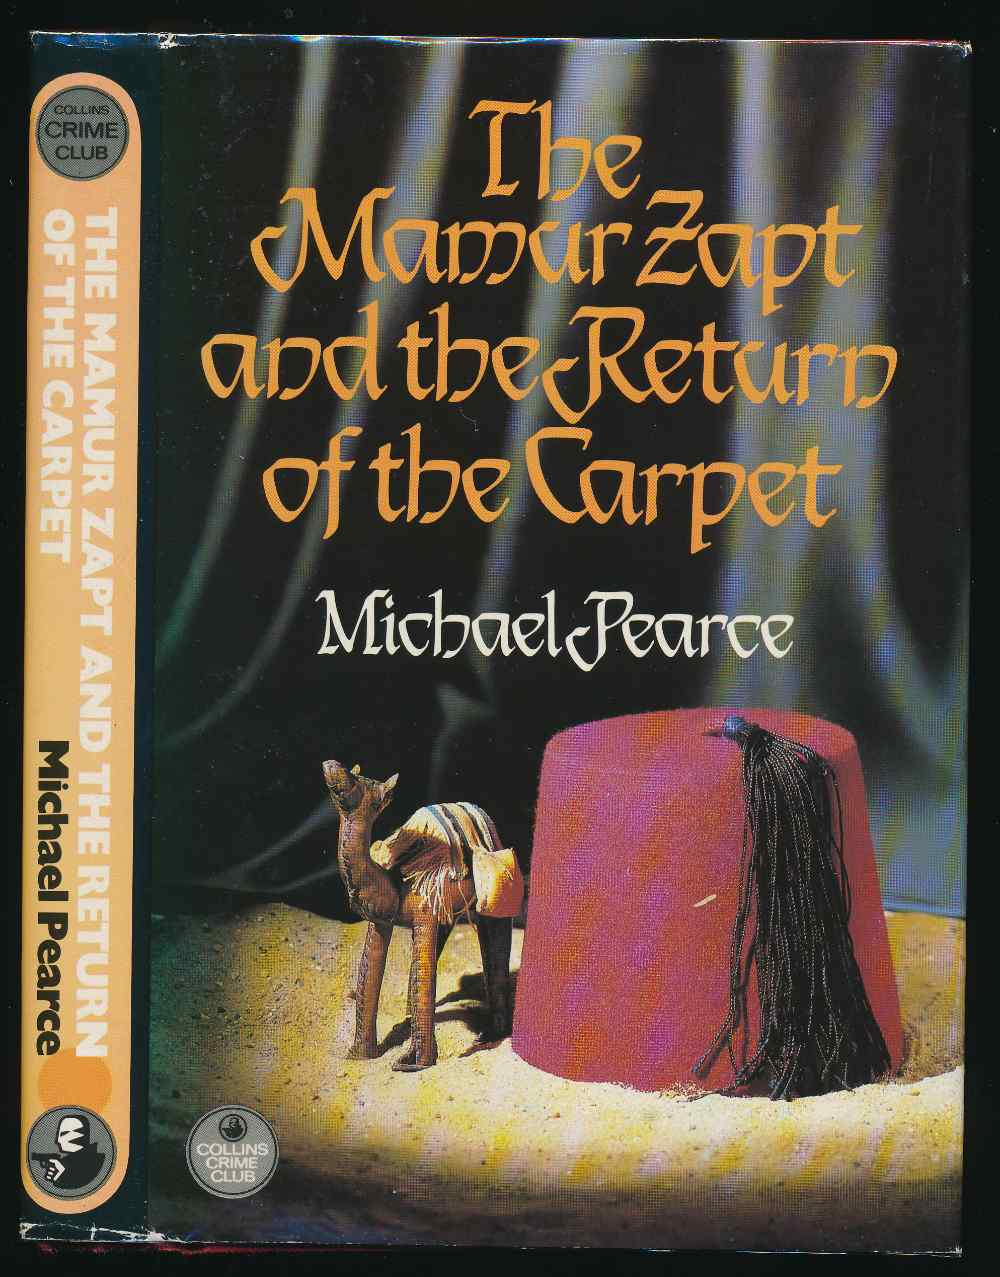 The Mamur Zapt and the return of the Carpet